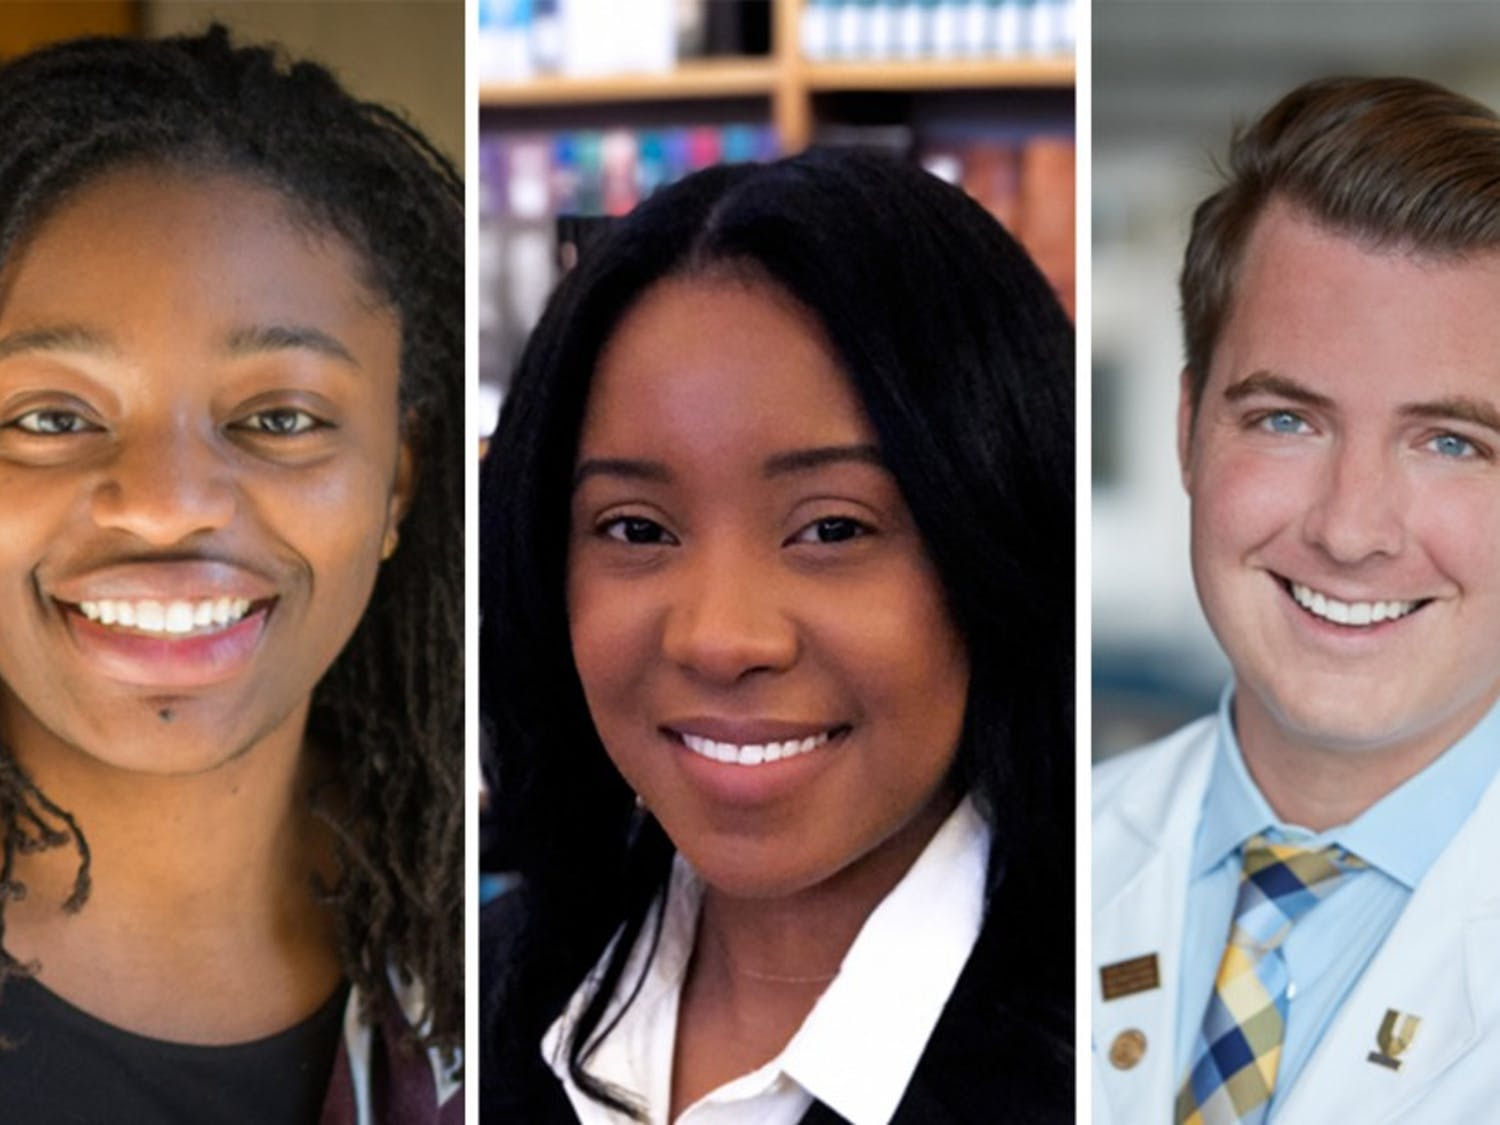 Voting members of the General Assembly of GPSC will select either Erika Moore, Alisha Hines or Daniel Goltz as their next Young Trustee.